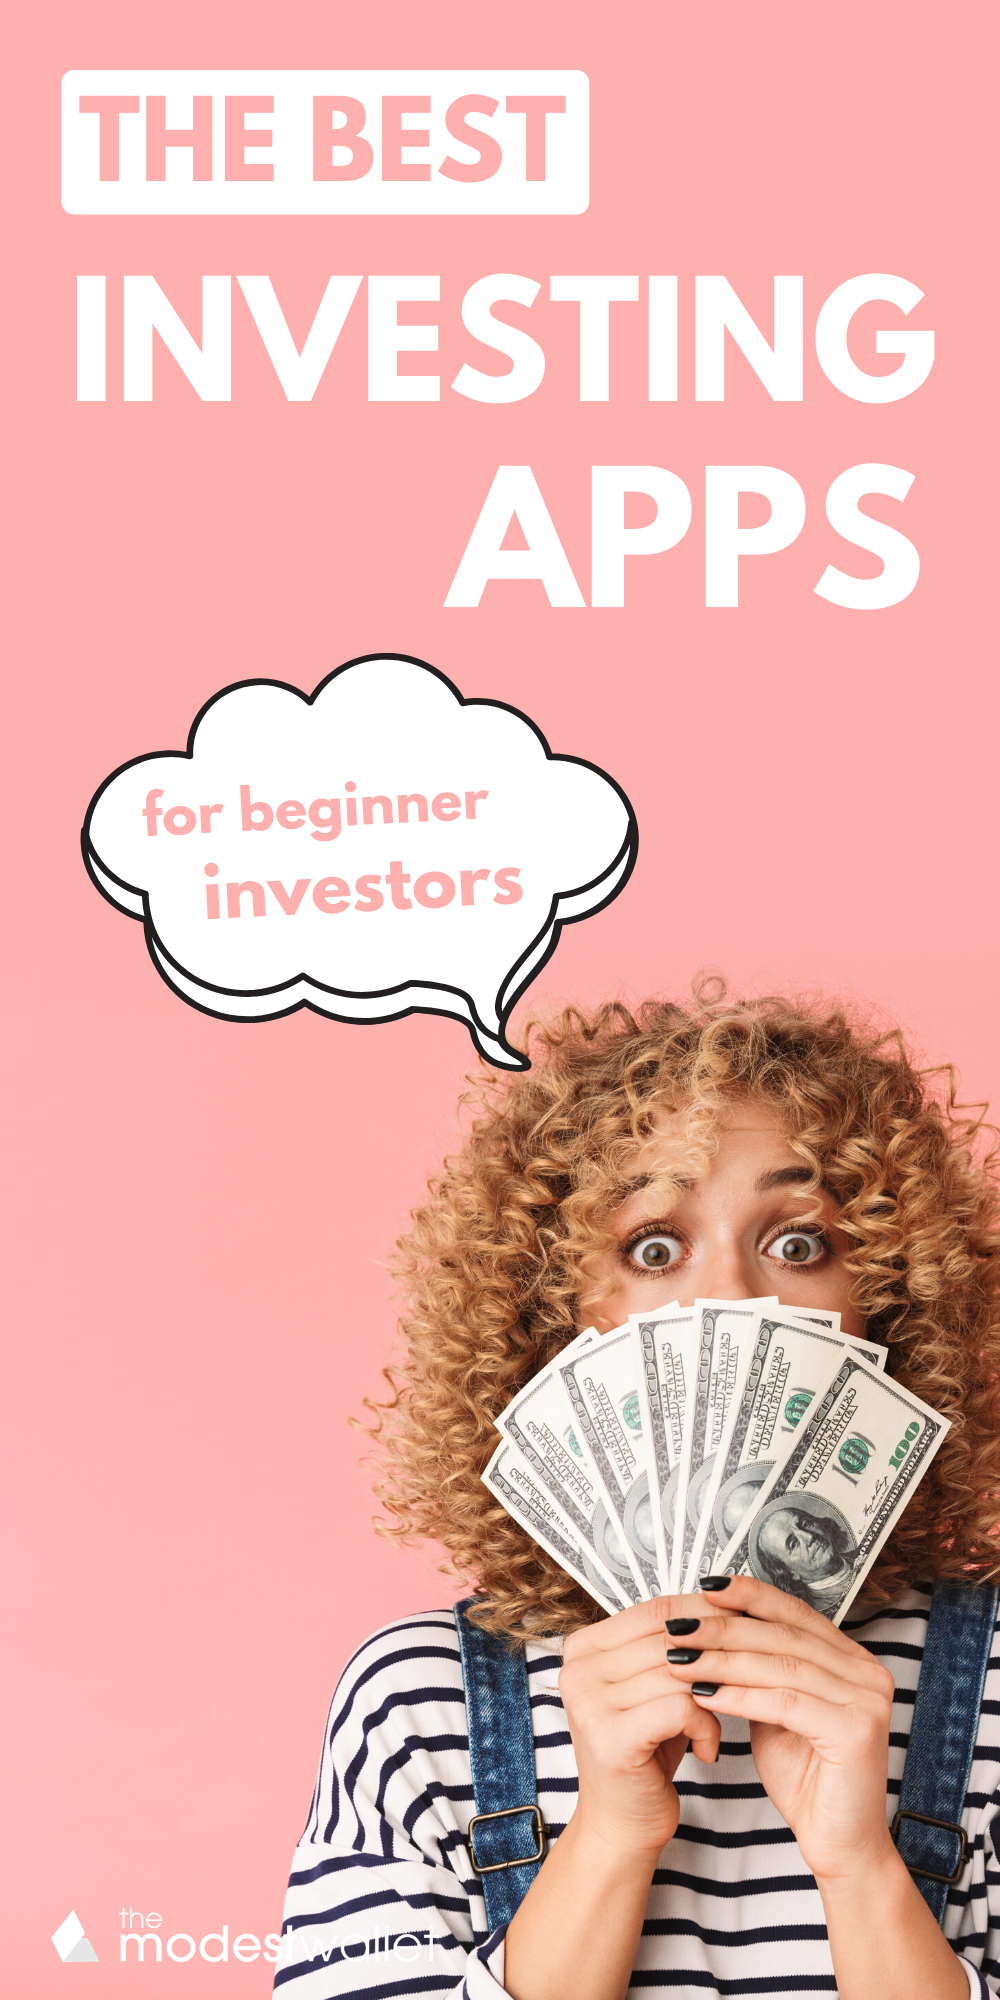 Best Investment Apps The Beginner Investor Toolbox in